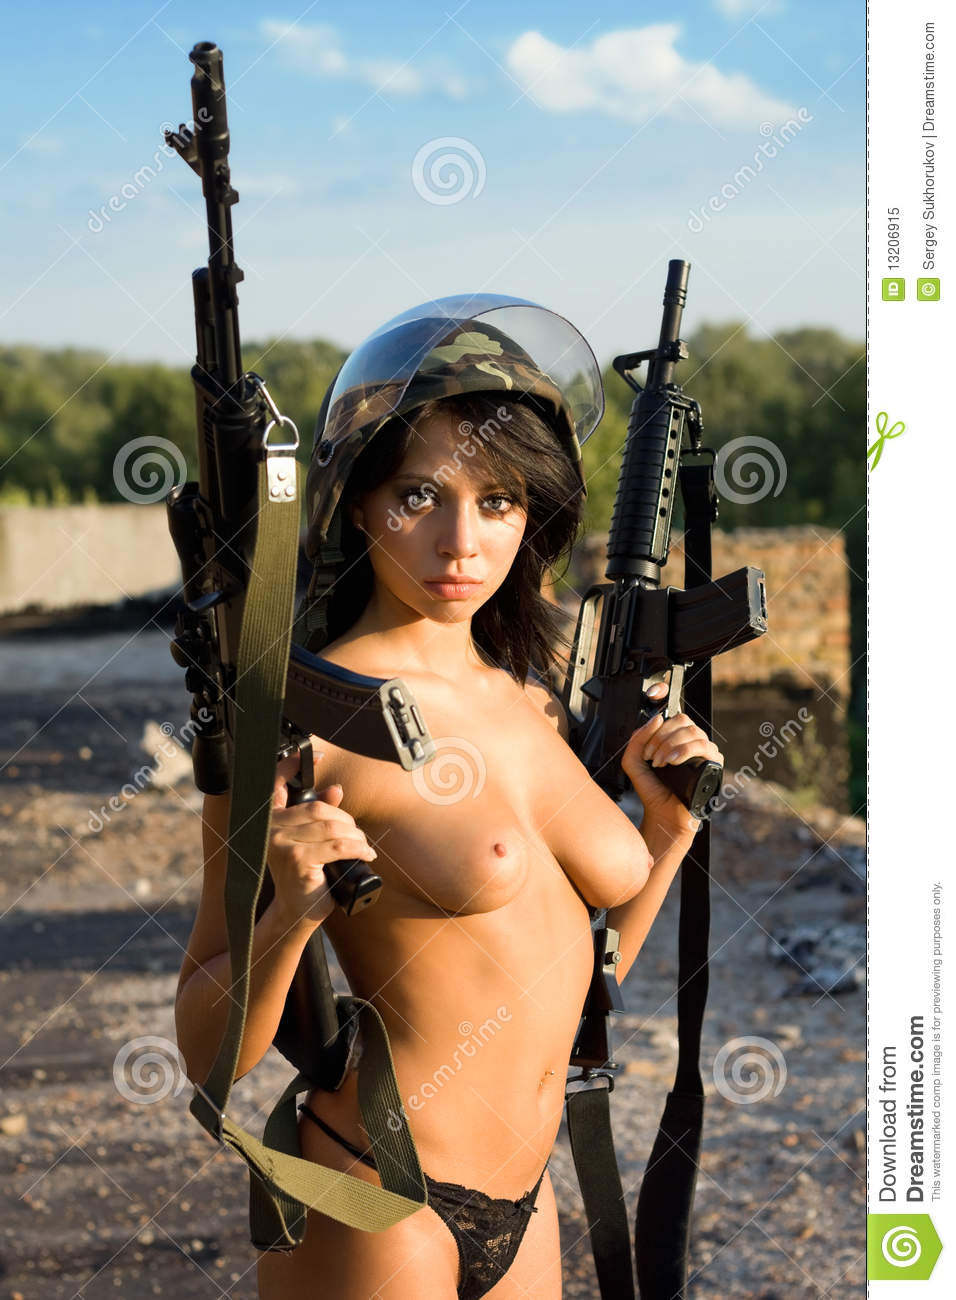 chick gun nude with